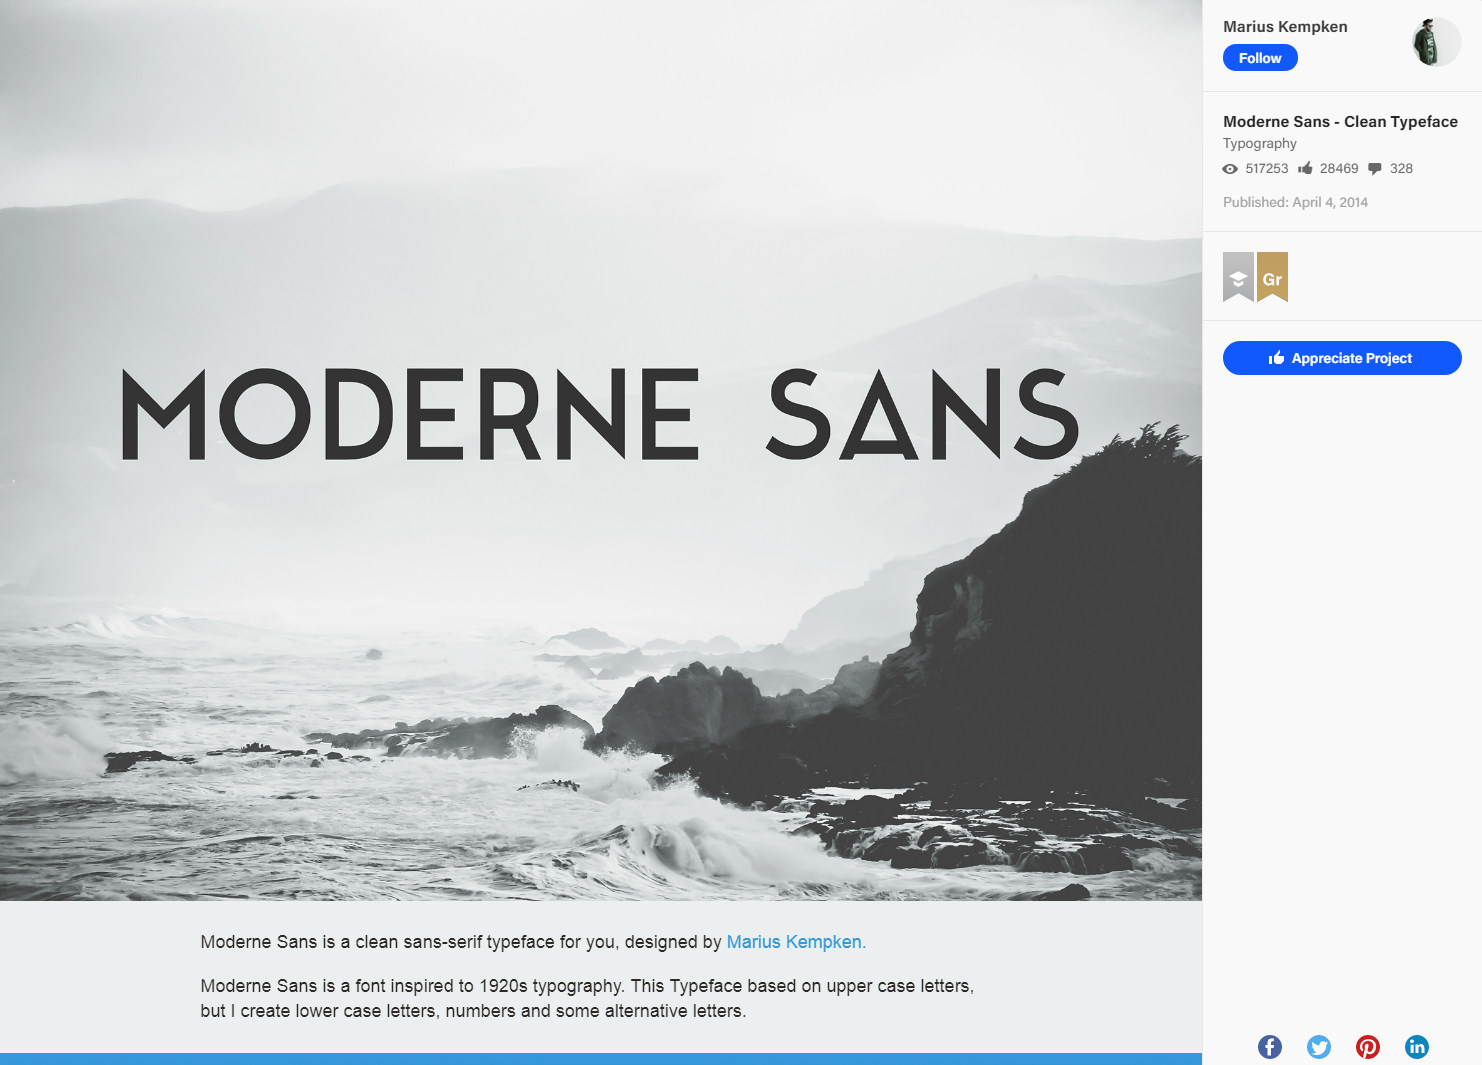 Moderne Sans - Clean Typeface on Behance